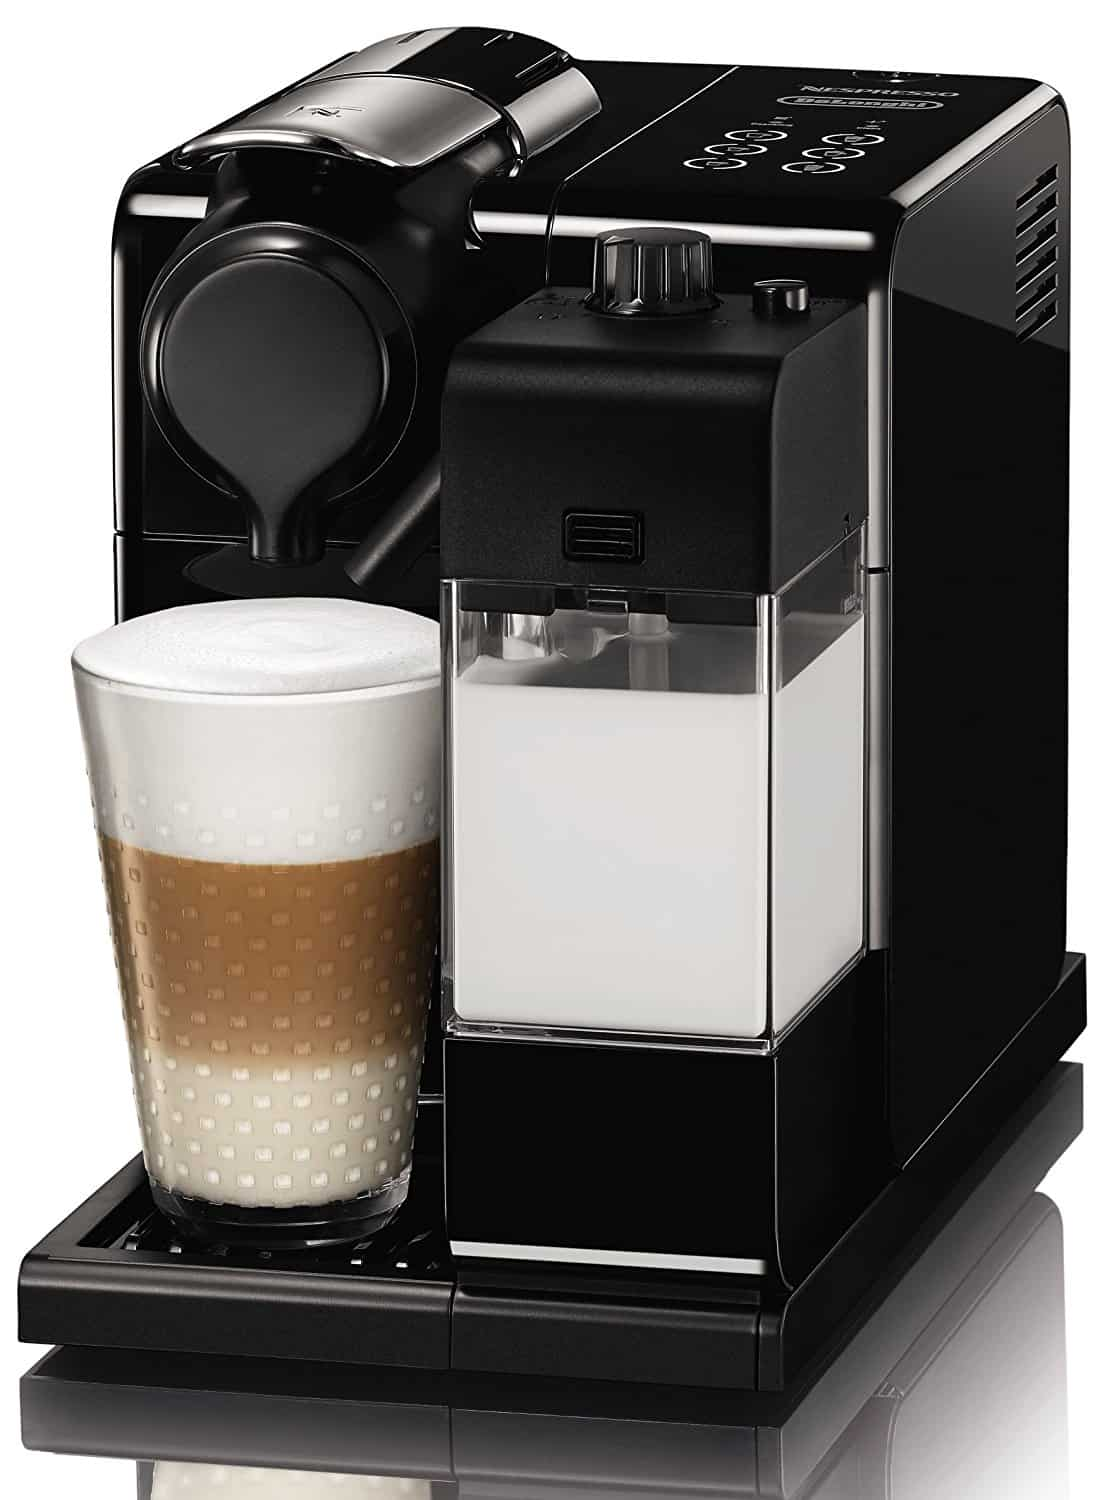 A picture of a typical Nespresso coffee machine which is still perhaps the best coffee machine australia 2019 has despite the influx of competitors.